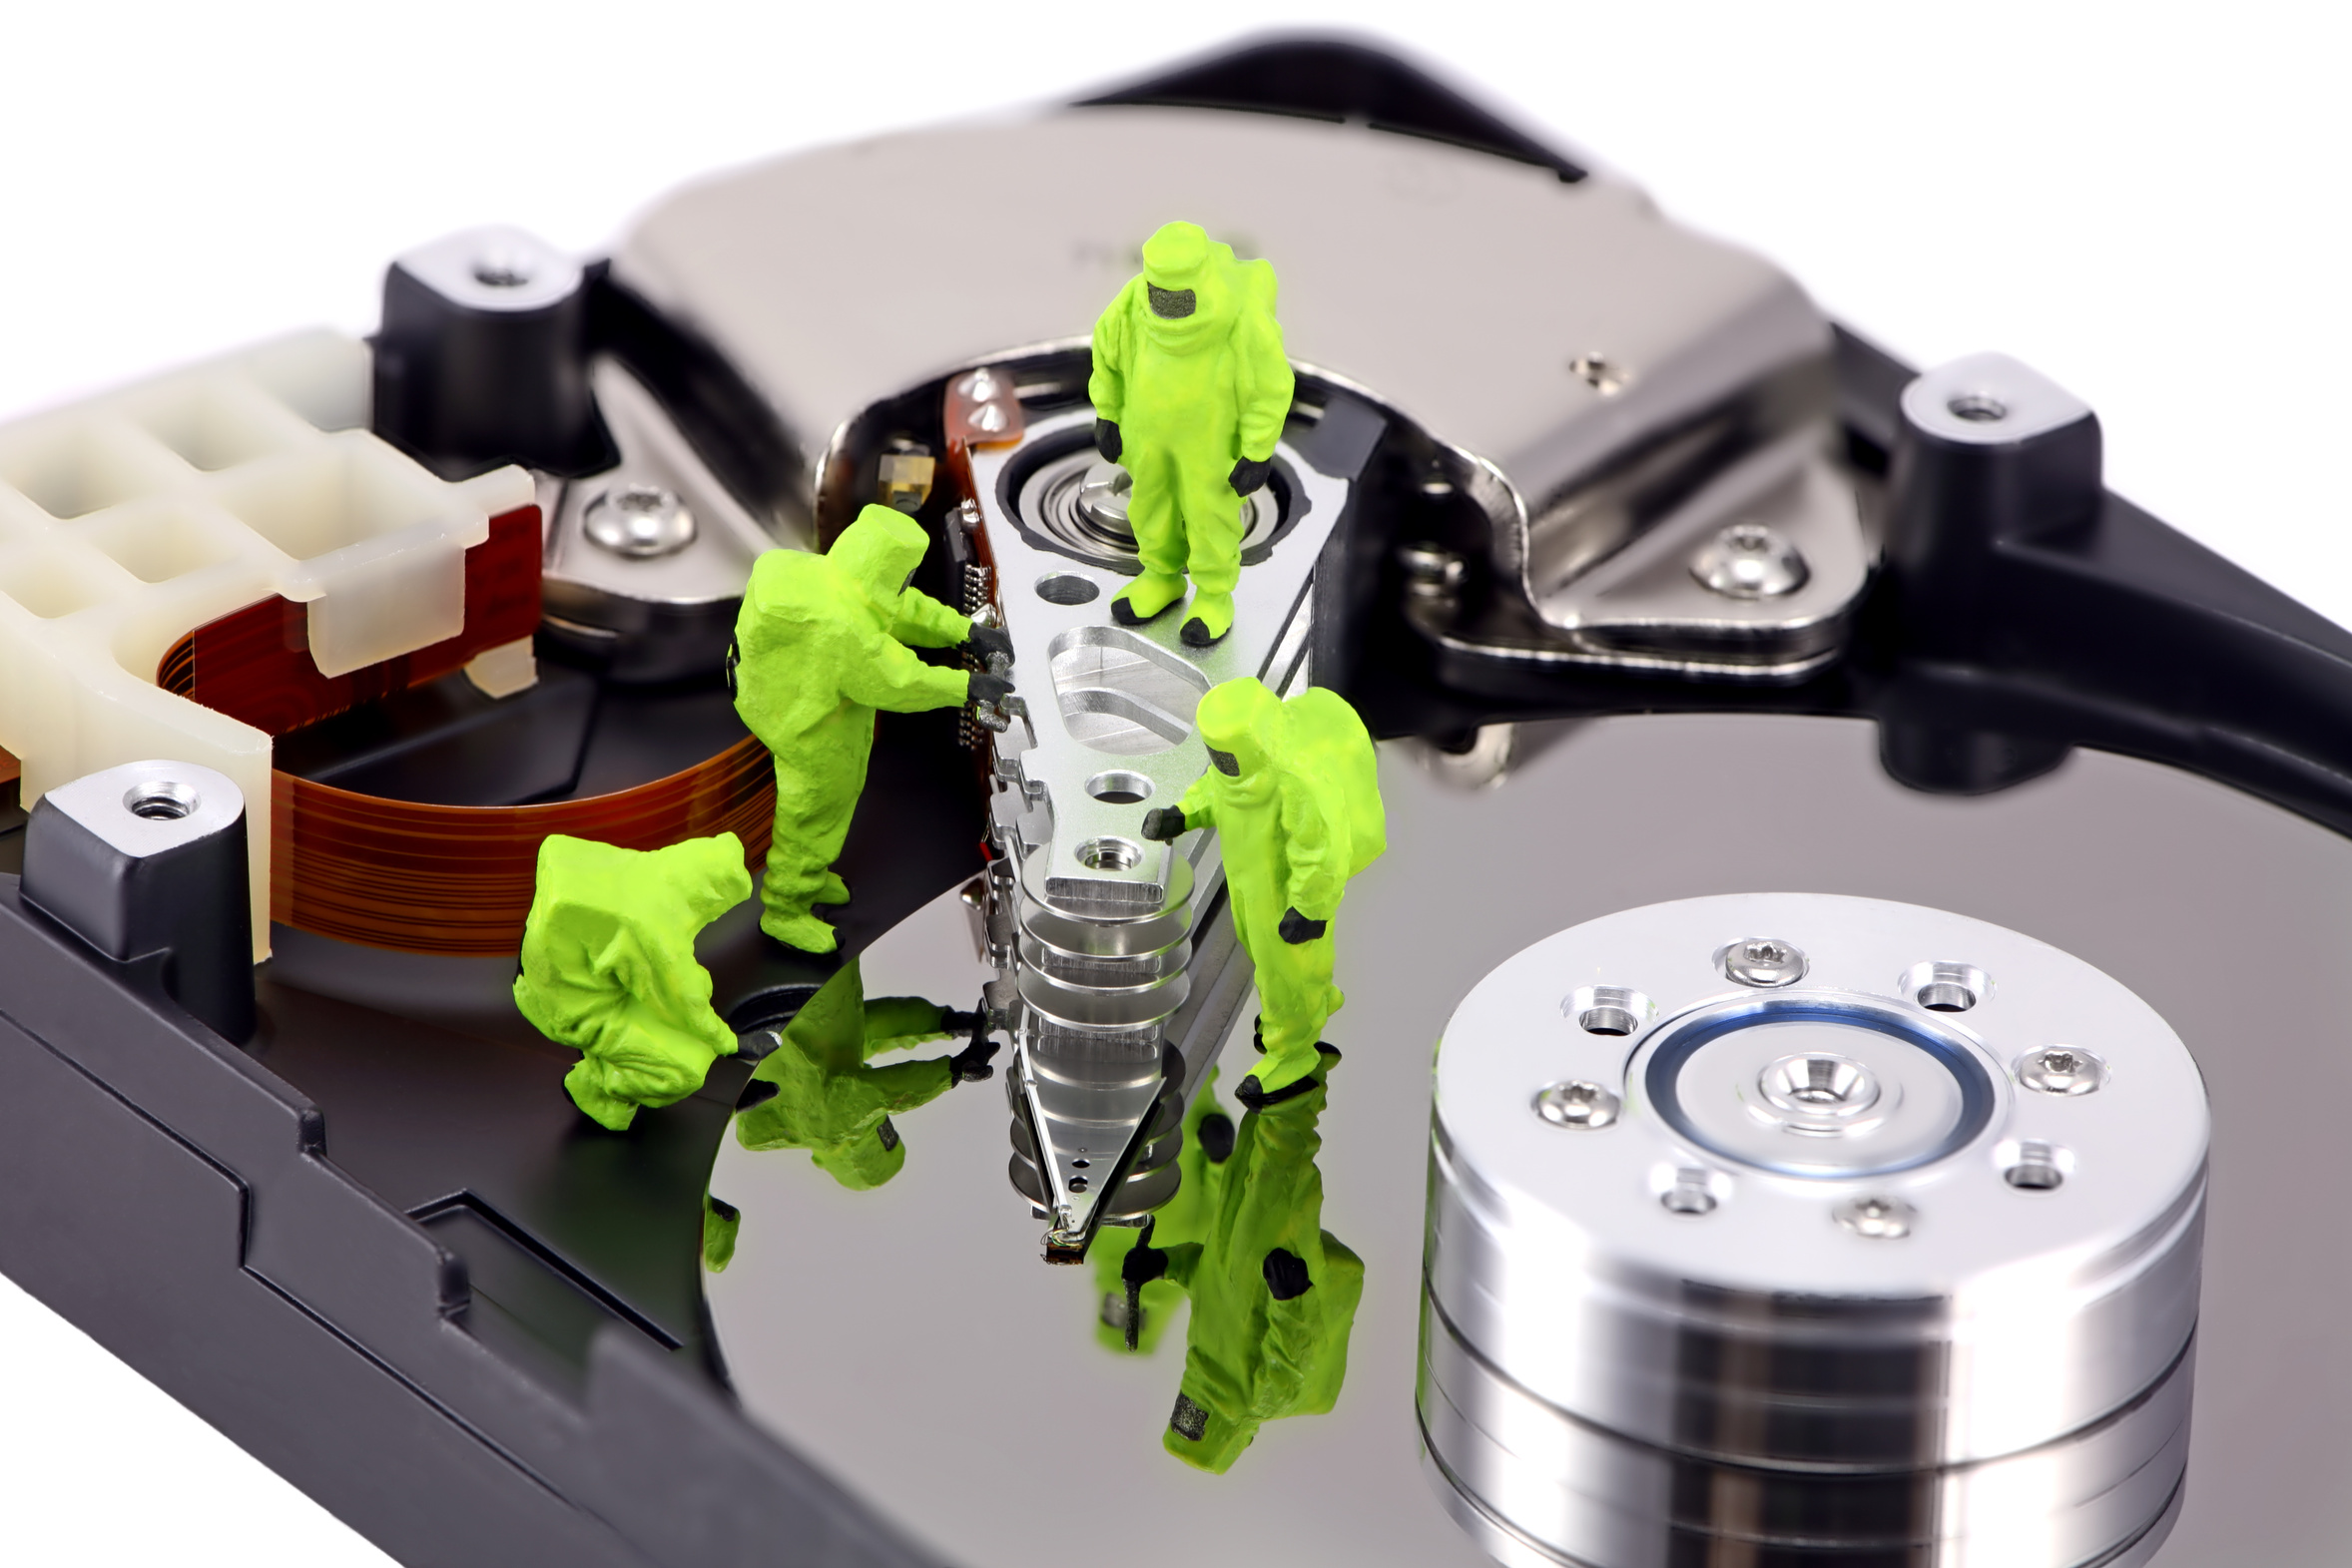 How to Find a Data Recovery Company that will Actually Recover Your Data